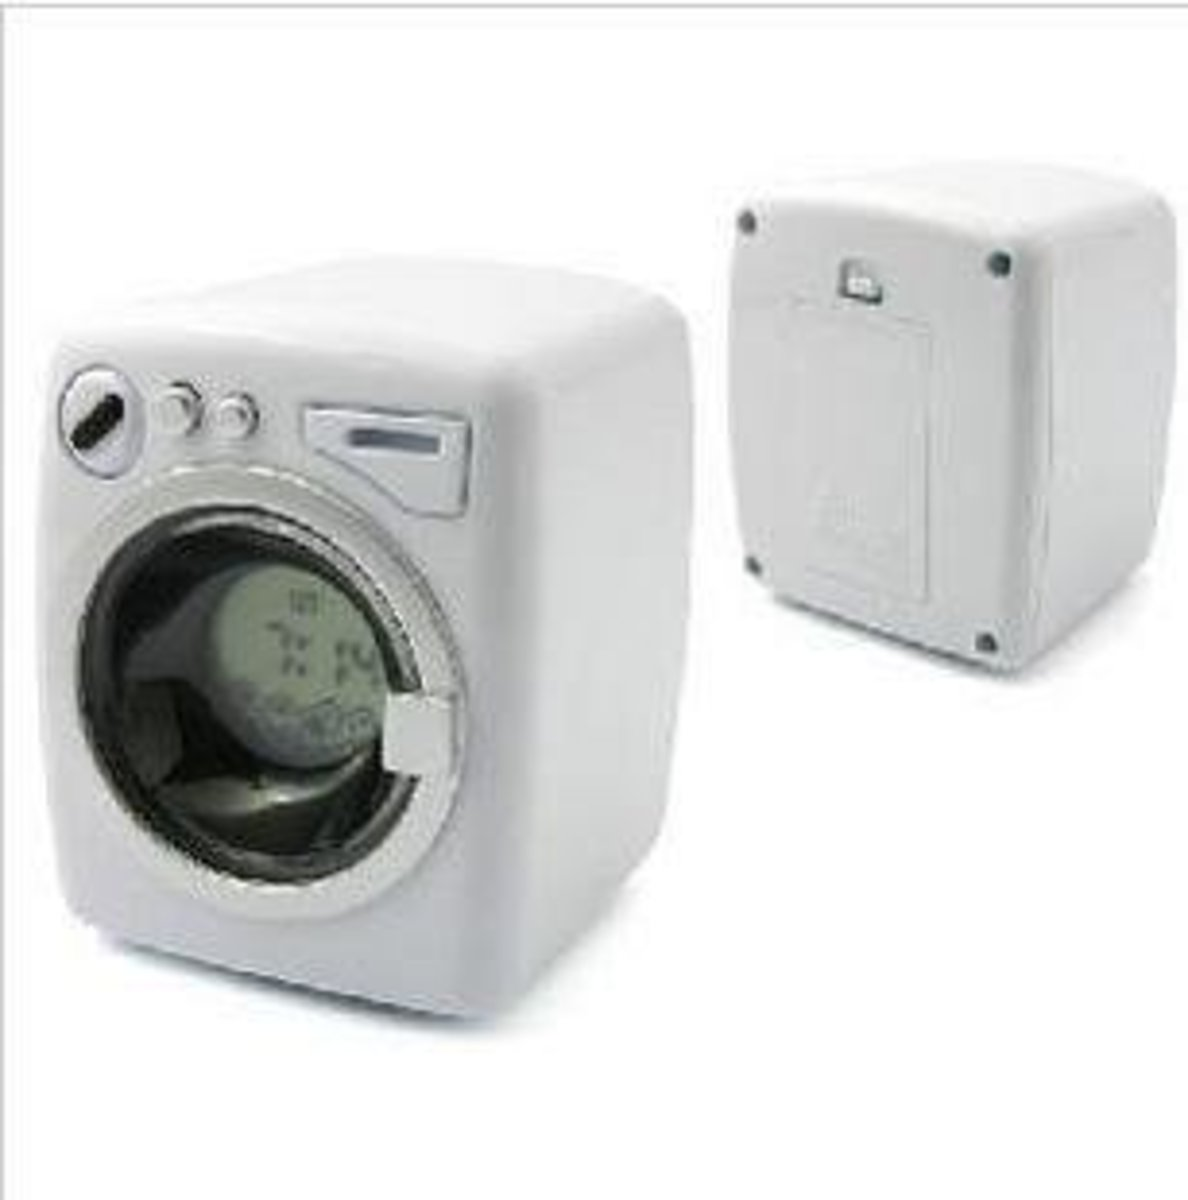 Washing Machine Alarm Clock-White